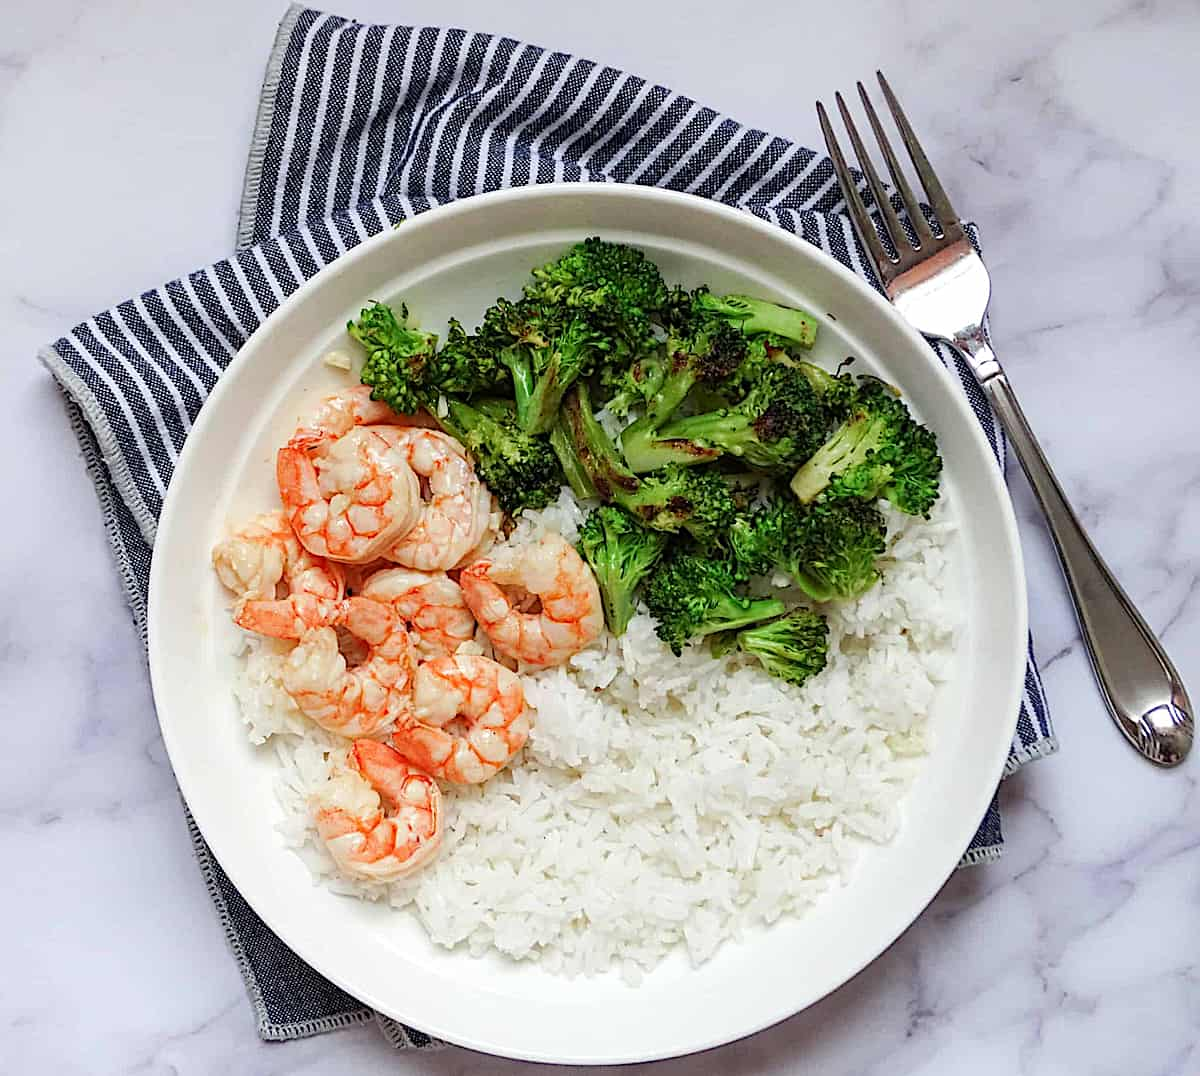 shrimp, broccoli and rice on a white plate